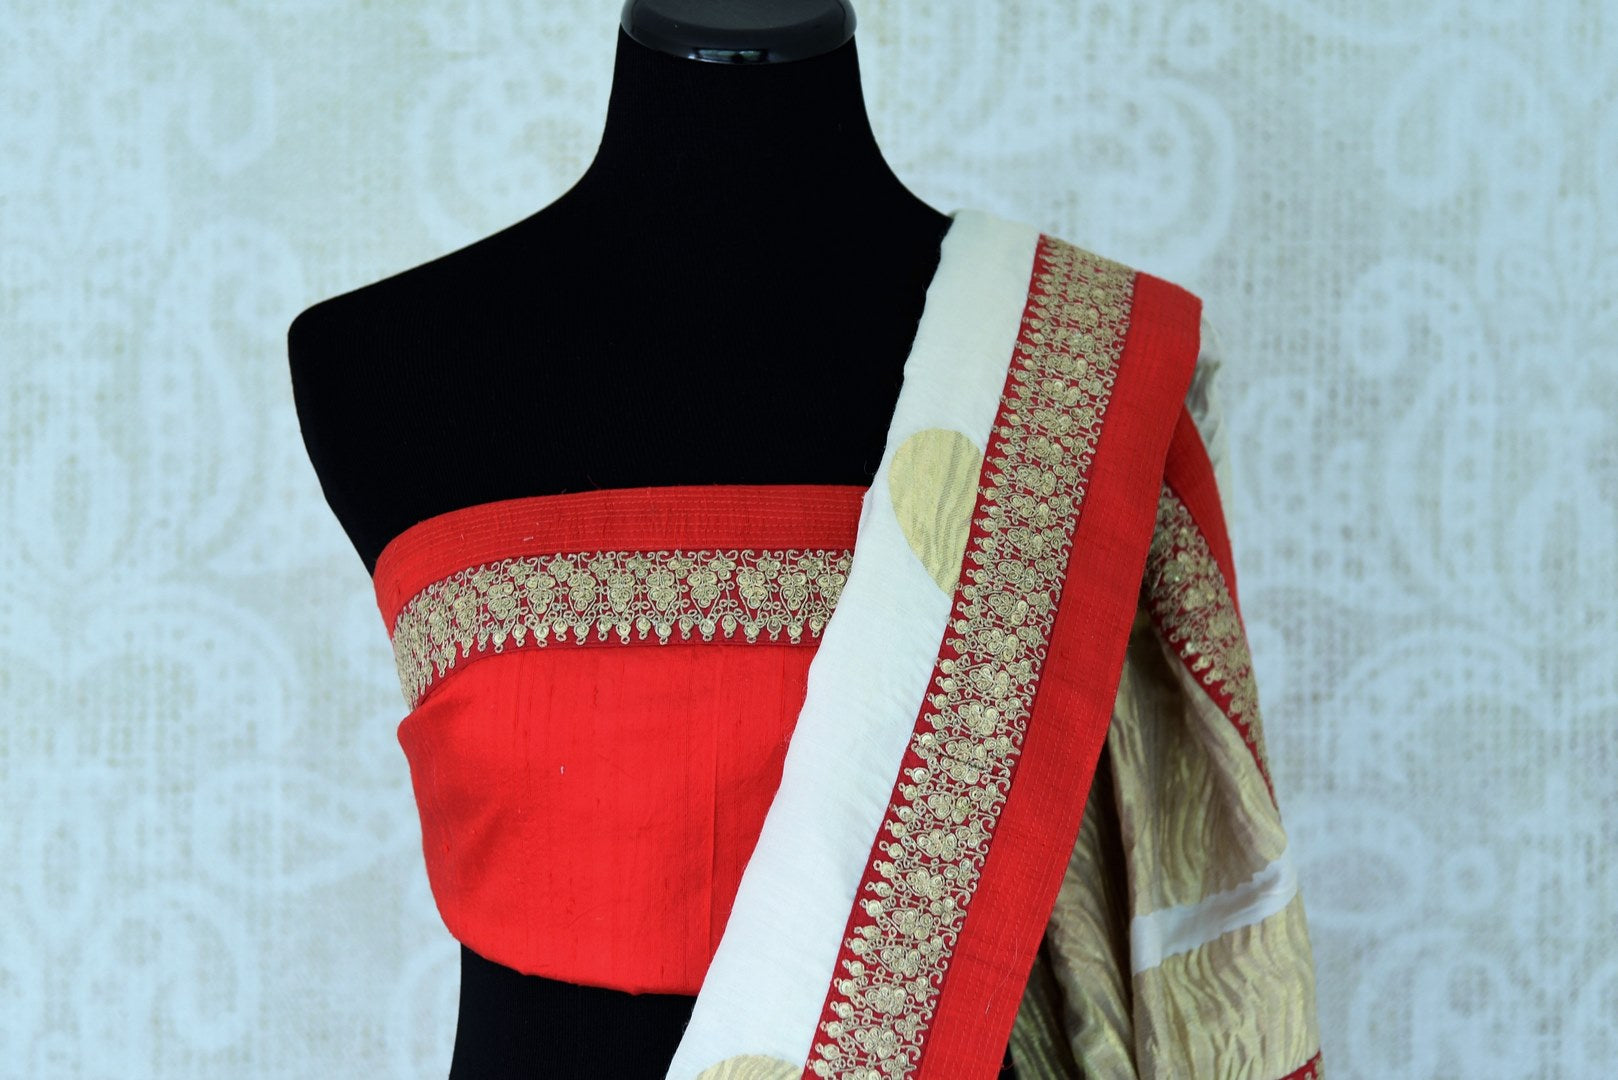 Buy white silk sari with embroidered border online in USA. Shop exclusive Indian designer saris, handloom sarees, Banarasi saris, wedding sarees in USA at Pure Elegance clothing store. Explore a range of traditional Indian women clothing also available at our online store. Shop now.-blouse pallu